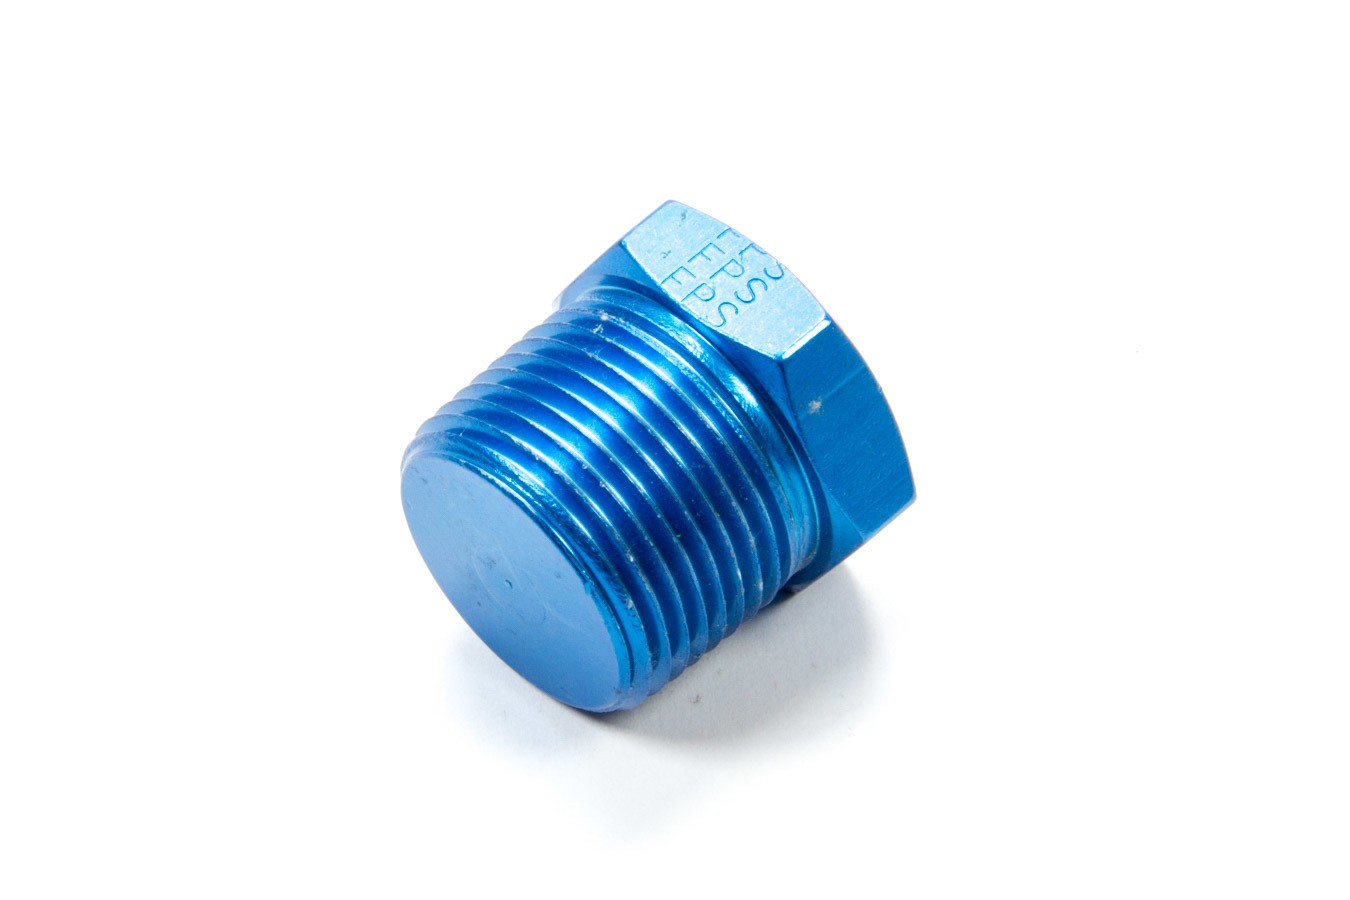 Fragola 493306 Fitting, Plug, 3/4 in NPT, Hex Head, Aluminum, Blue Anodize, Each